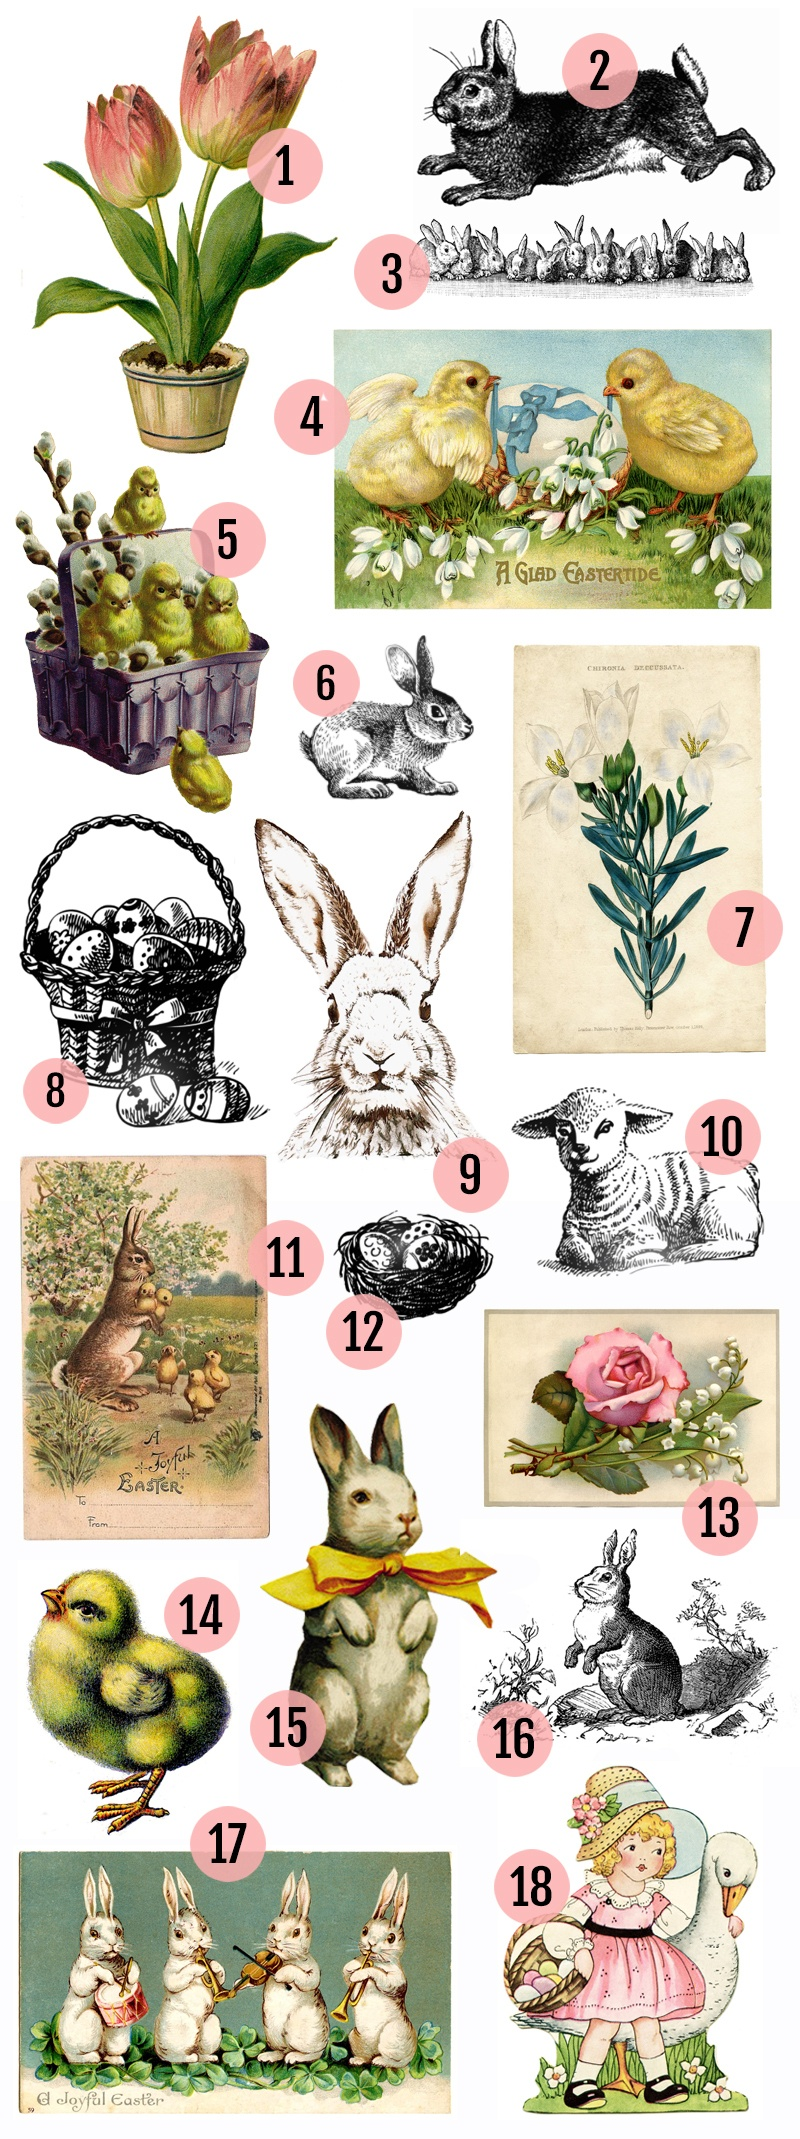 Free Vintage Easter Clipart Images » Maggie Holmes Design - Free Printable Vintage Easter Images